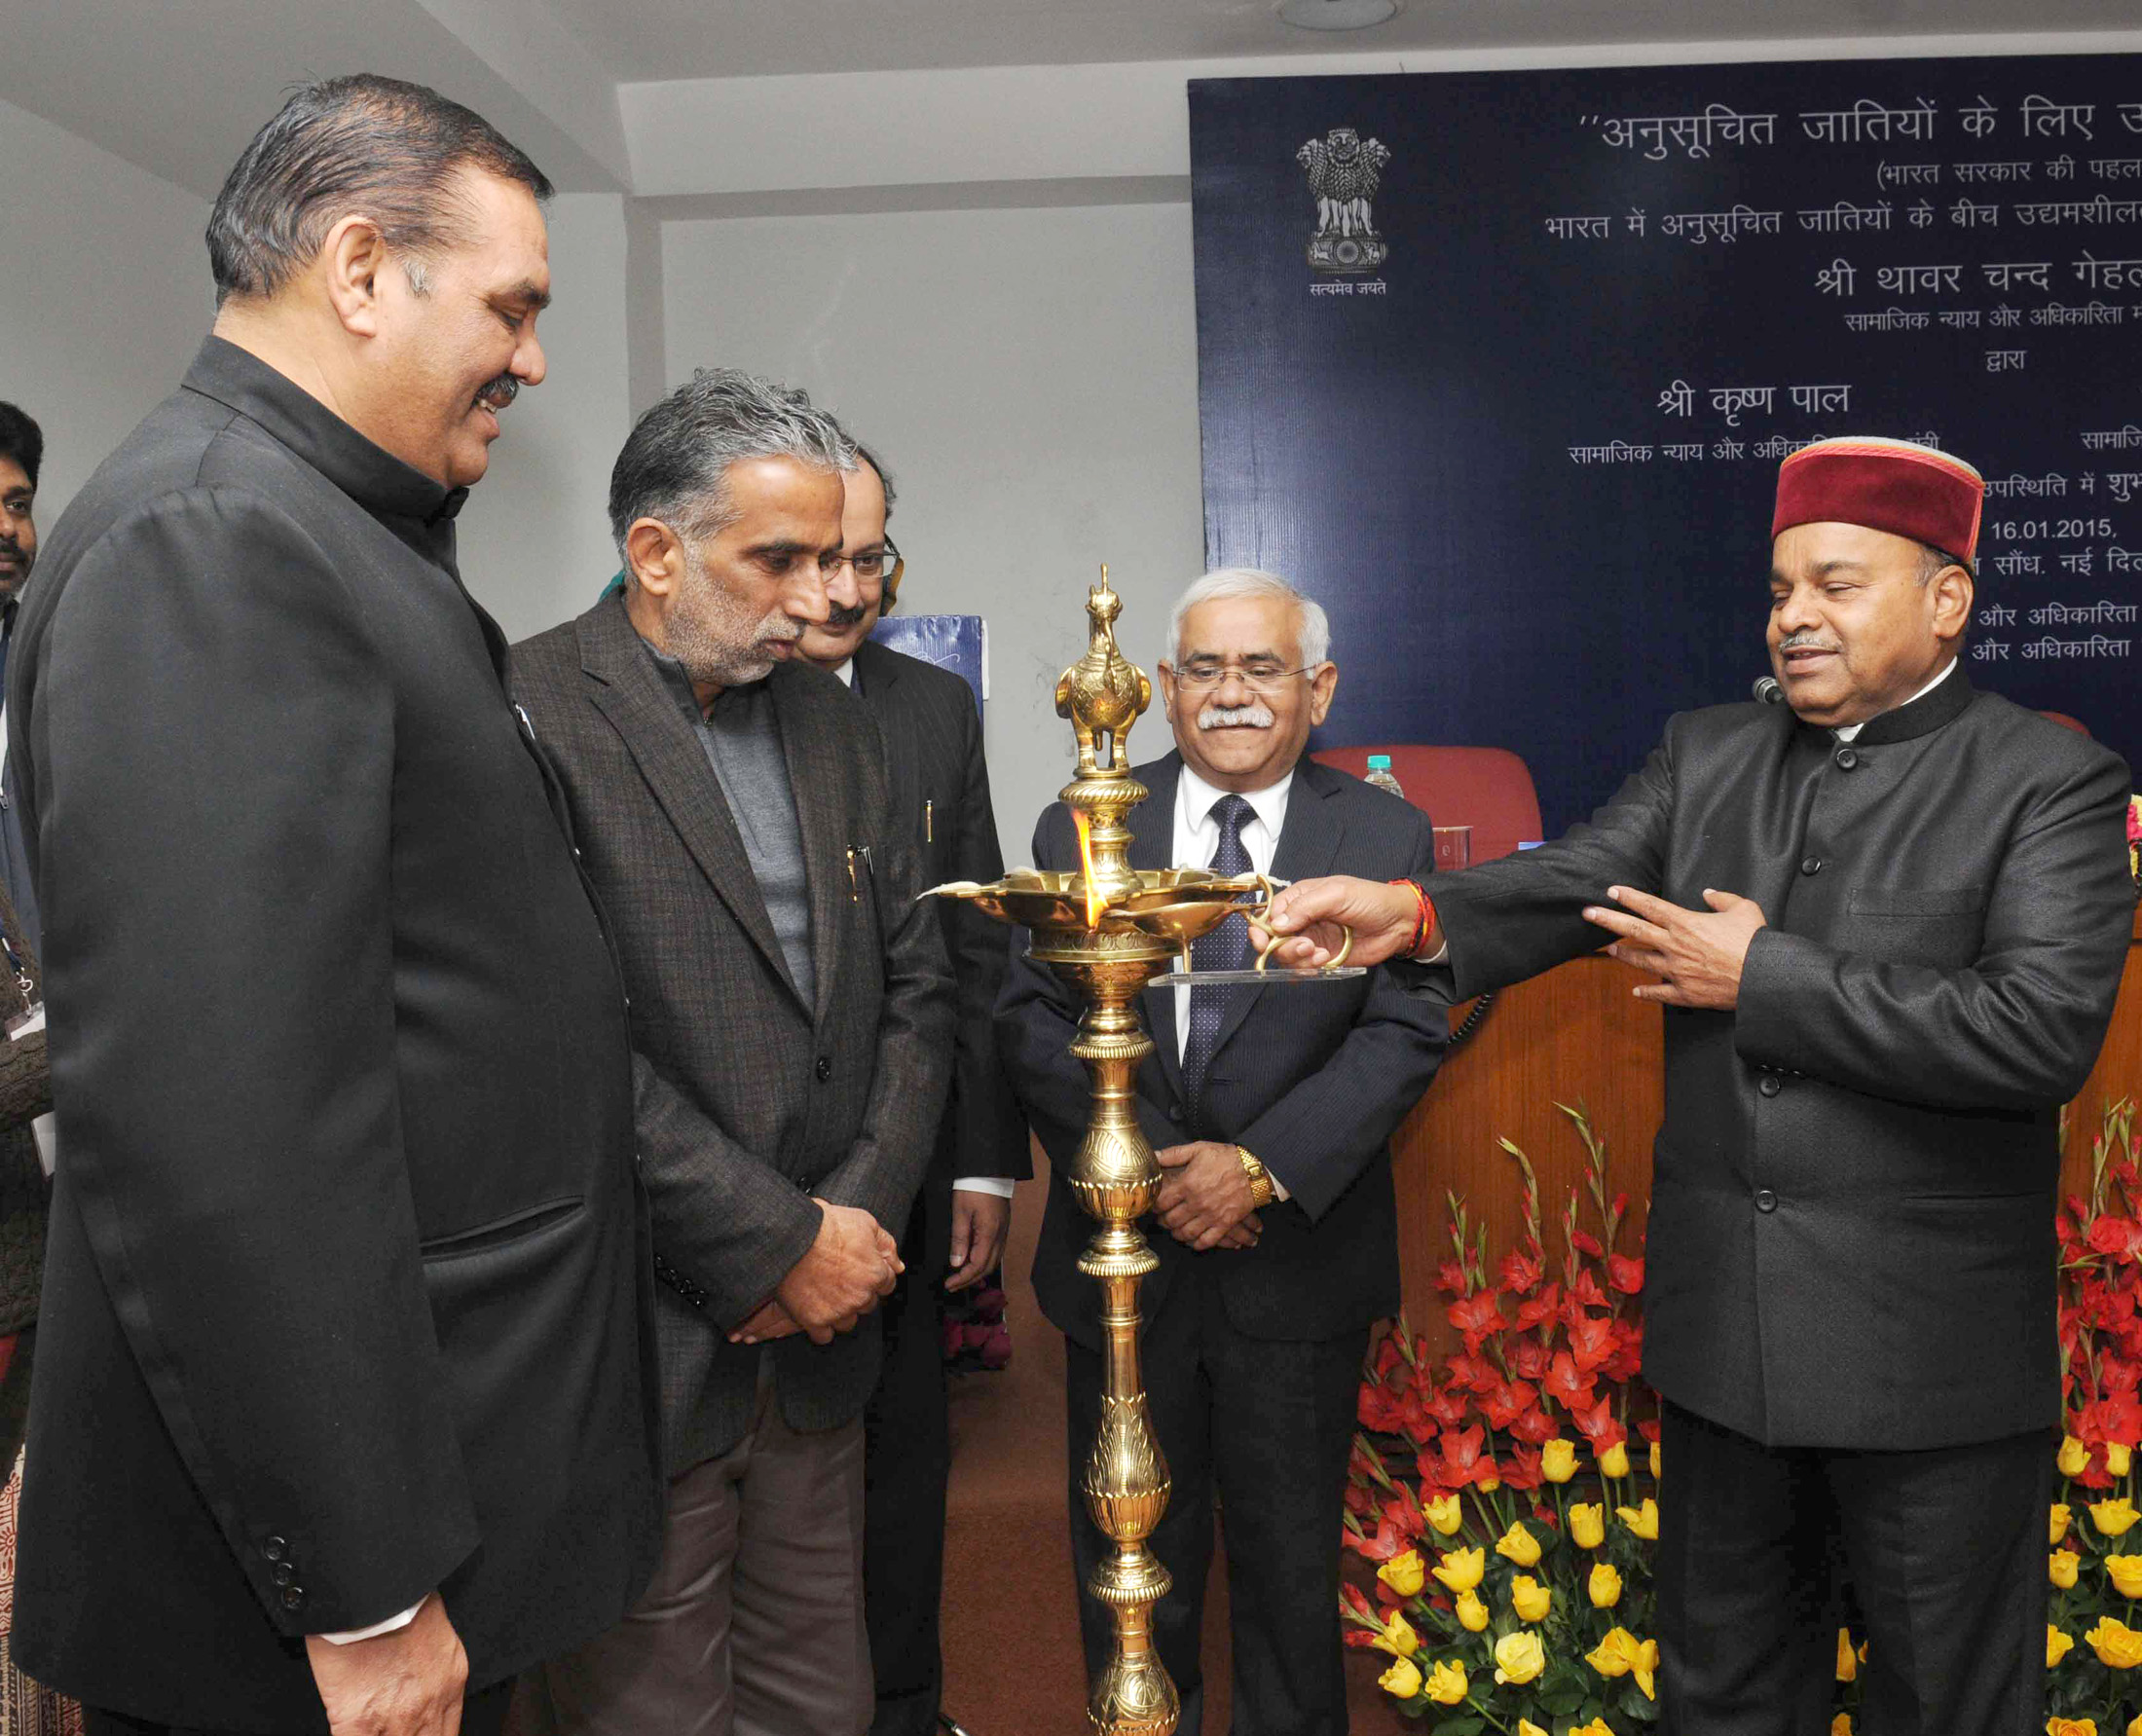 Thaawar Chand Gehlot lighting the lamp at the launch of the Venture Capital Fund for Scheduled Caste, in New Delhi. The Minister of State for Social